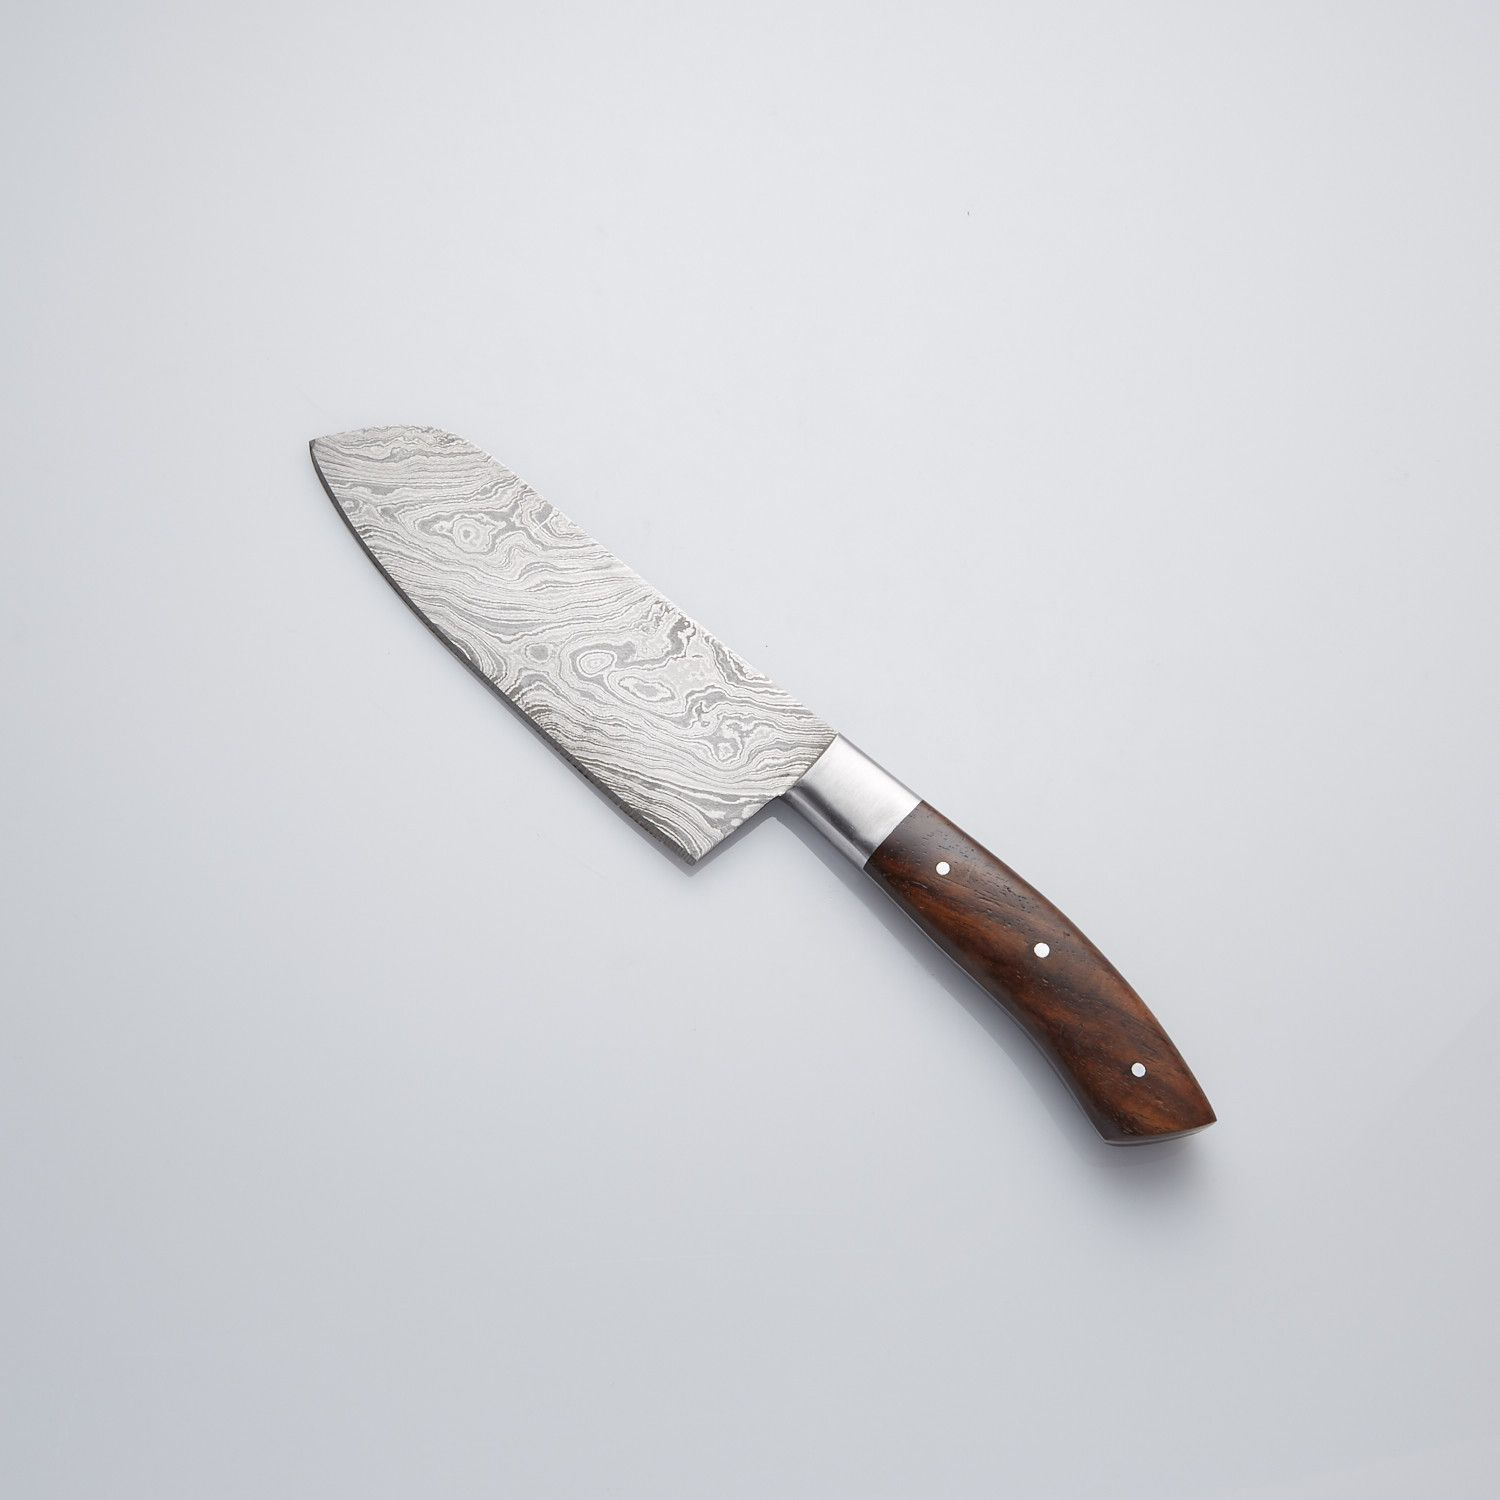 ROSE WOOD + STAINLESS STEEL BOLSTER KITCHEN CHEF KNIFE